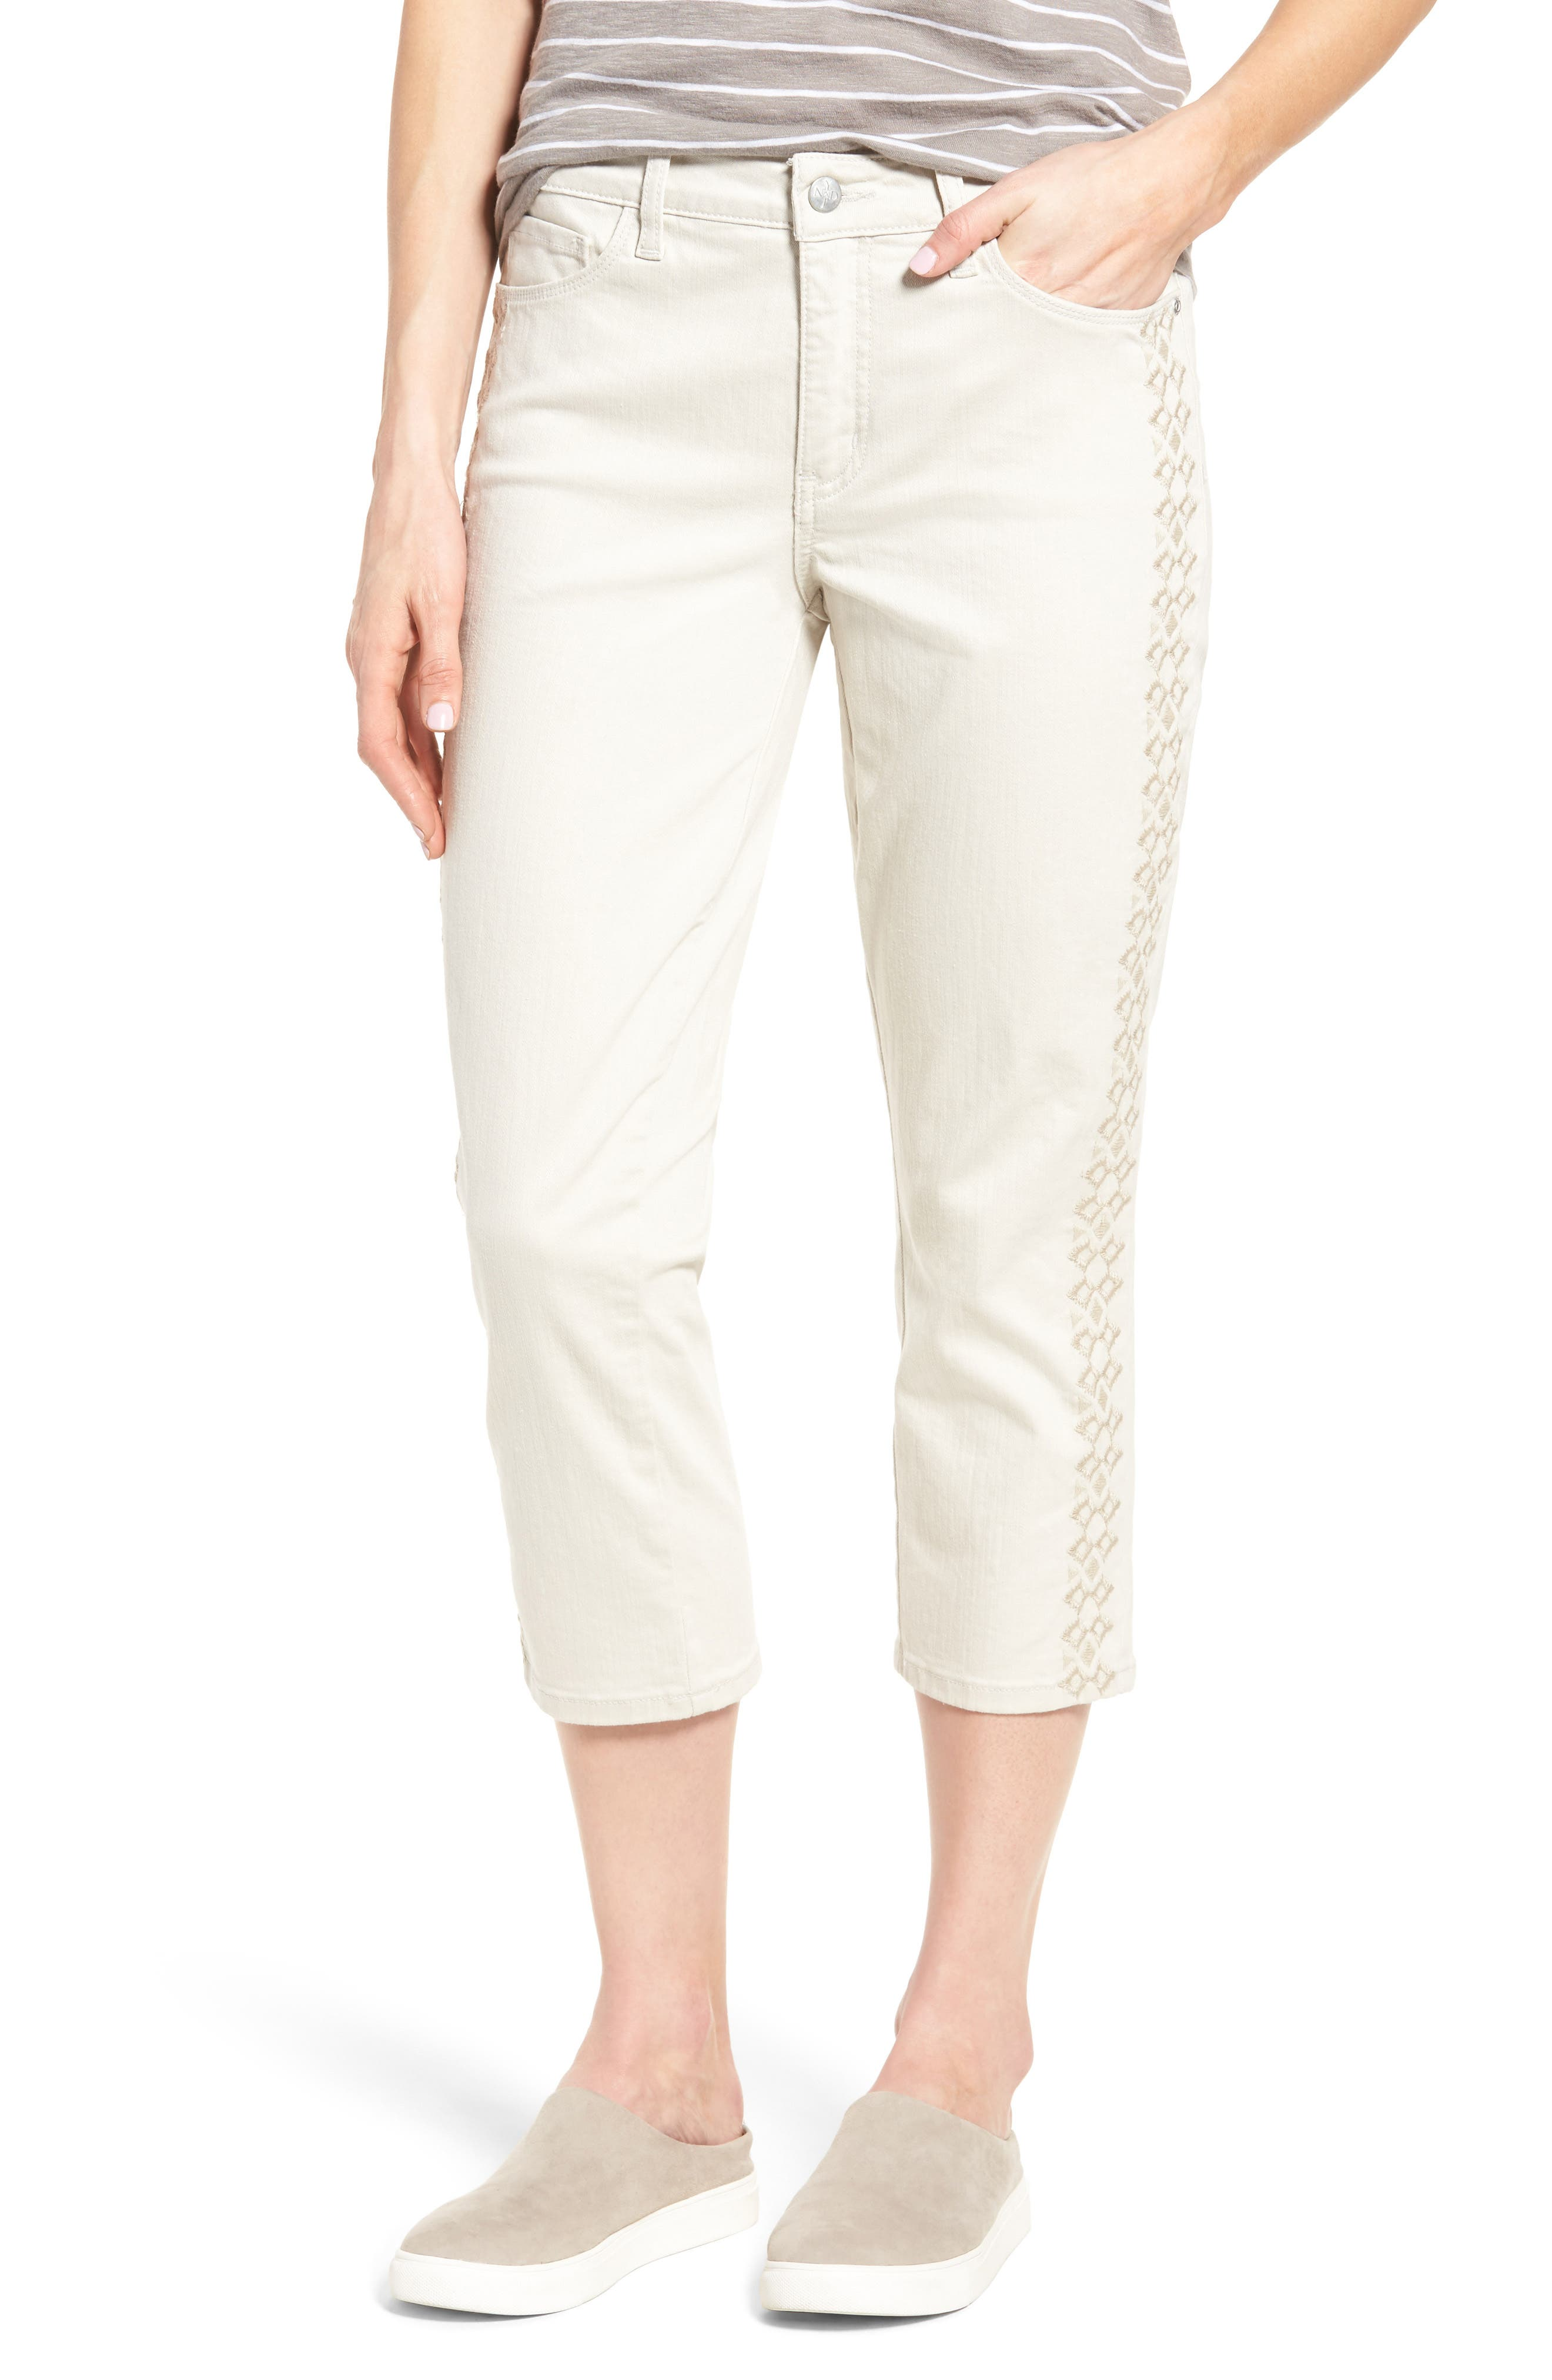 NYDJ Alina Embroidered Stretch Capri Jeans